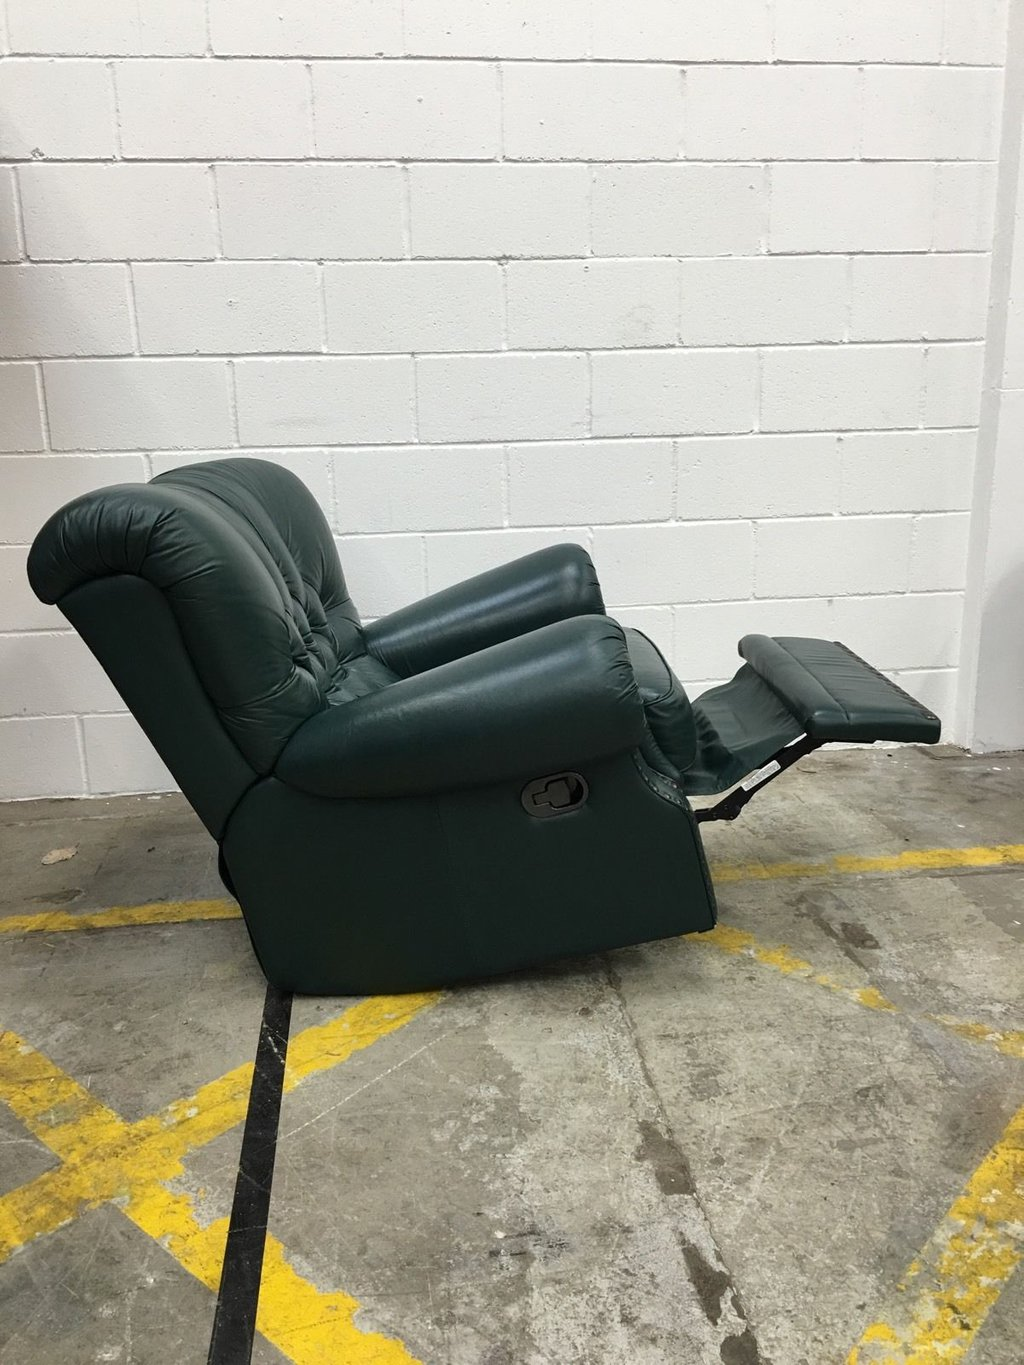 Vintage Green Leather Chesterfield Recliner Chair Ahern How A Reclining Sofa To Function Properly